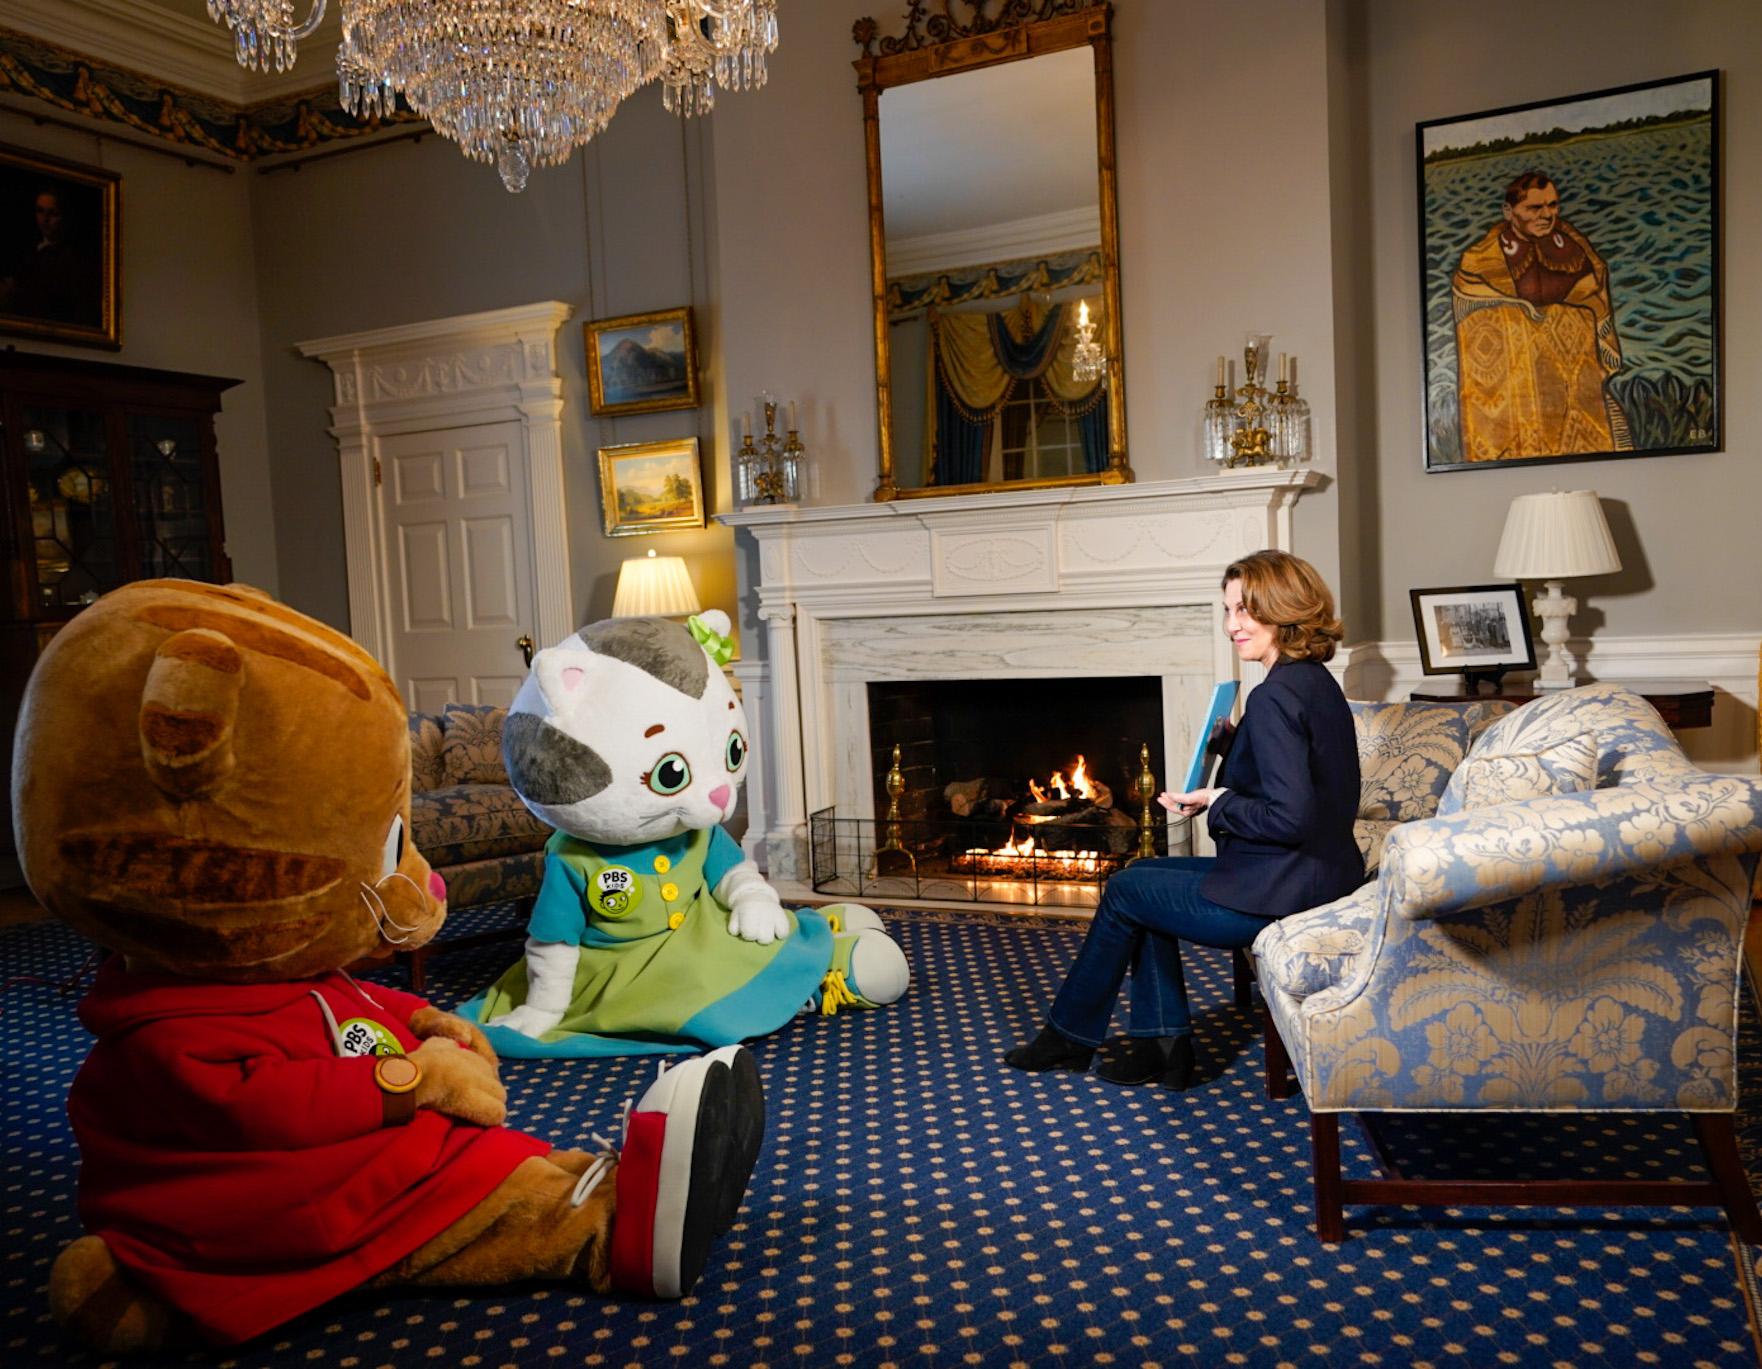 Daniel Tiger, Katerina Kittycat Join First Lady Of Virginia Pamela Northam For A Coronavirus Message To Children